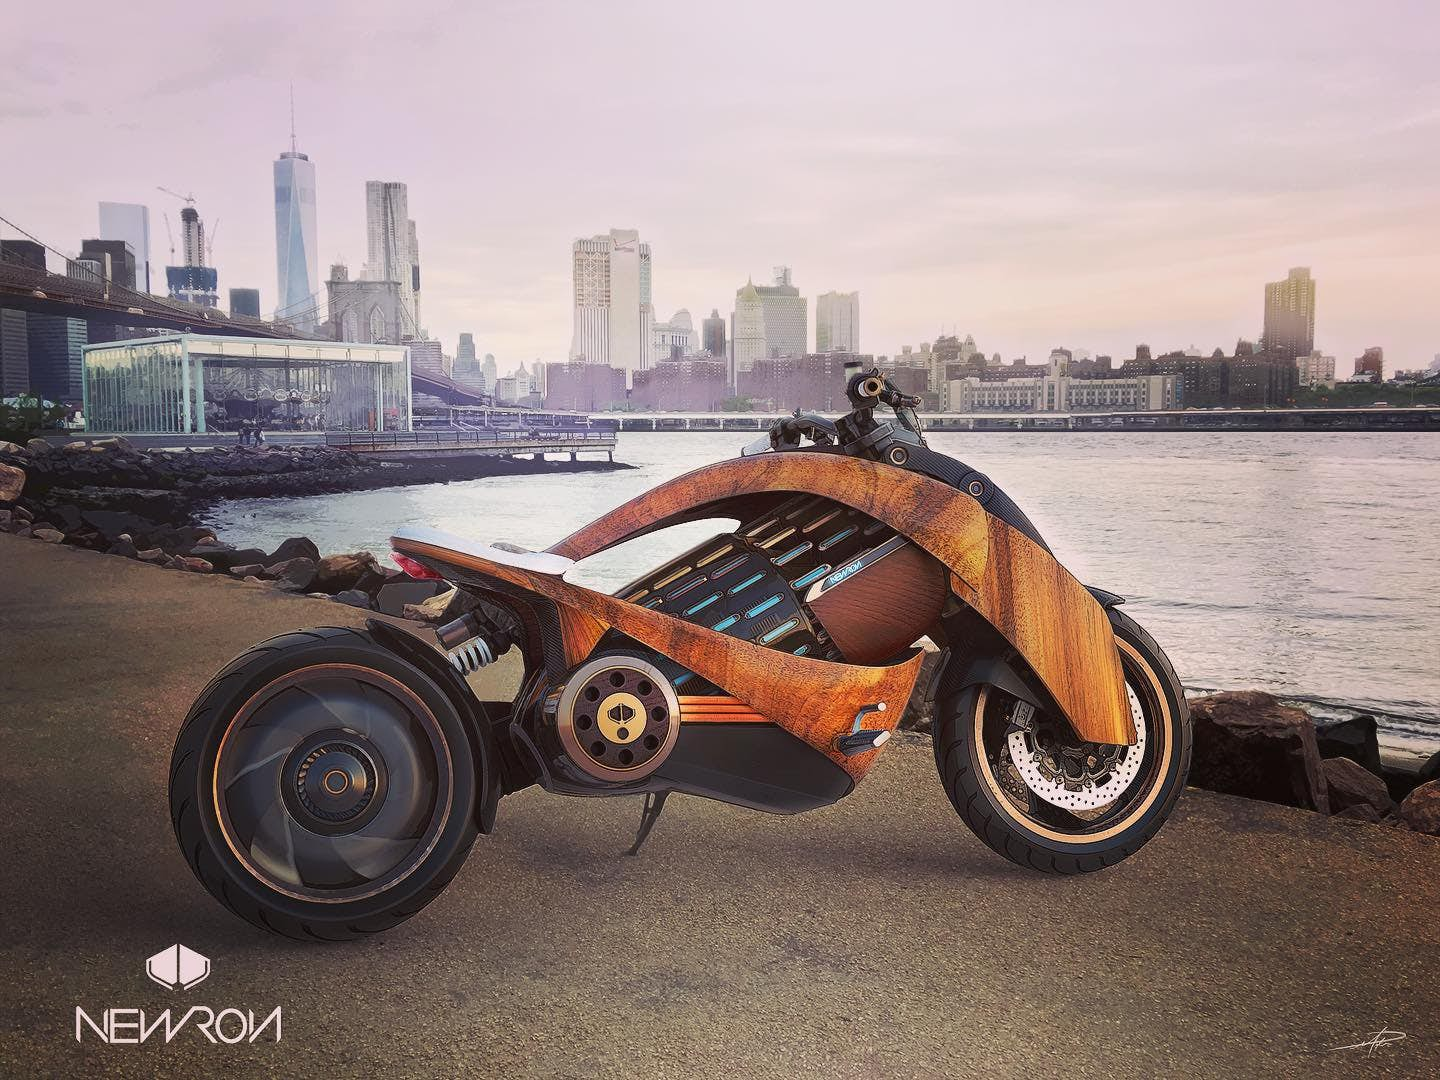 https://www.numerama.com/content/uploads/2019/08/newron-french-electric-motorcycle-1.jpg